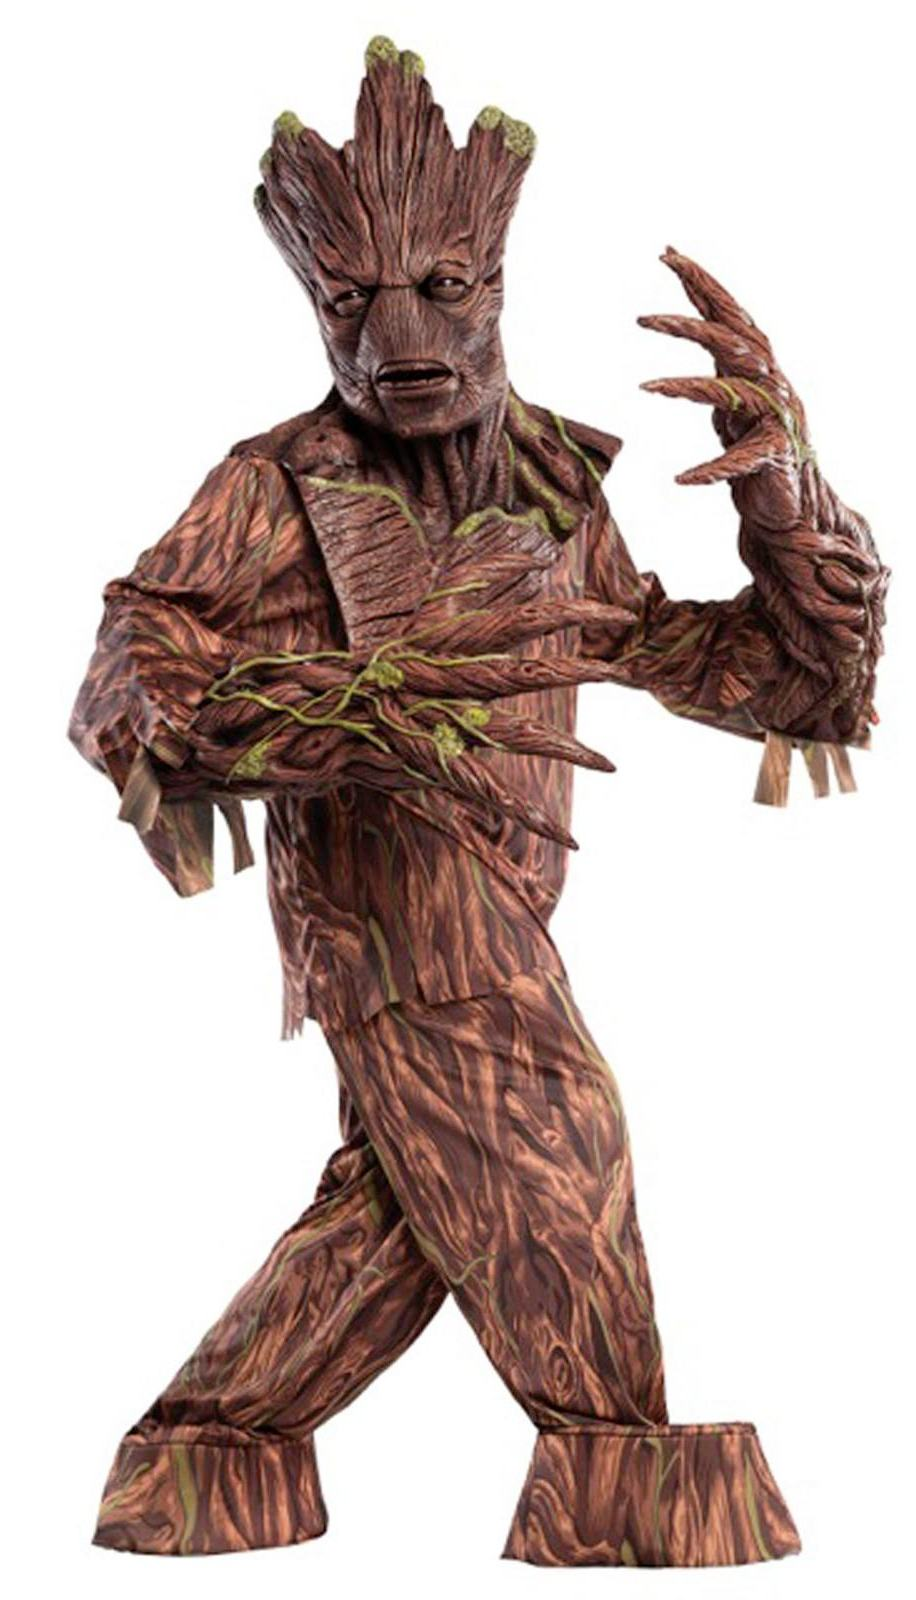 Fantasia-Guardians-of-the-Galaxy-Groot-Creature-Reacher-Costume-02